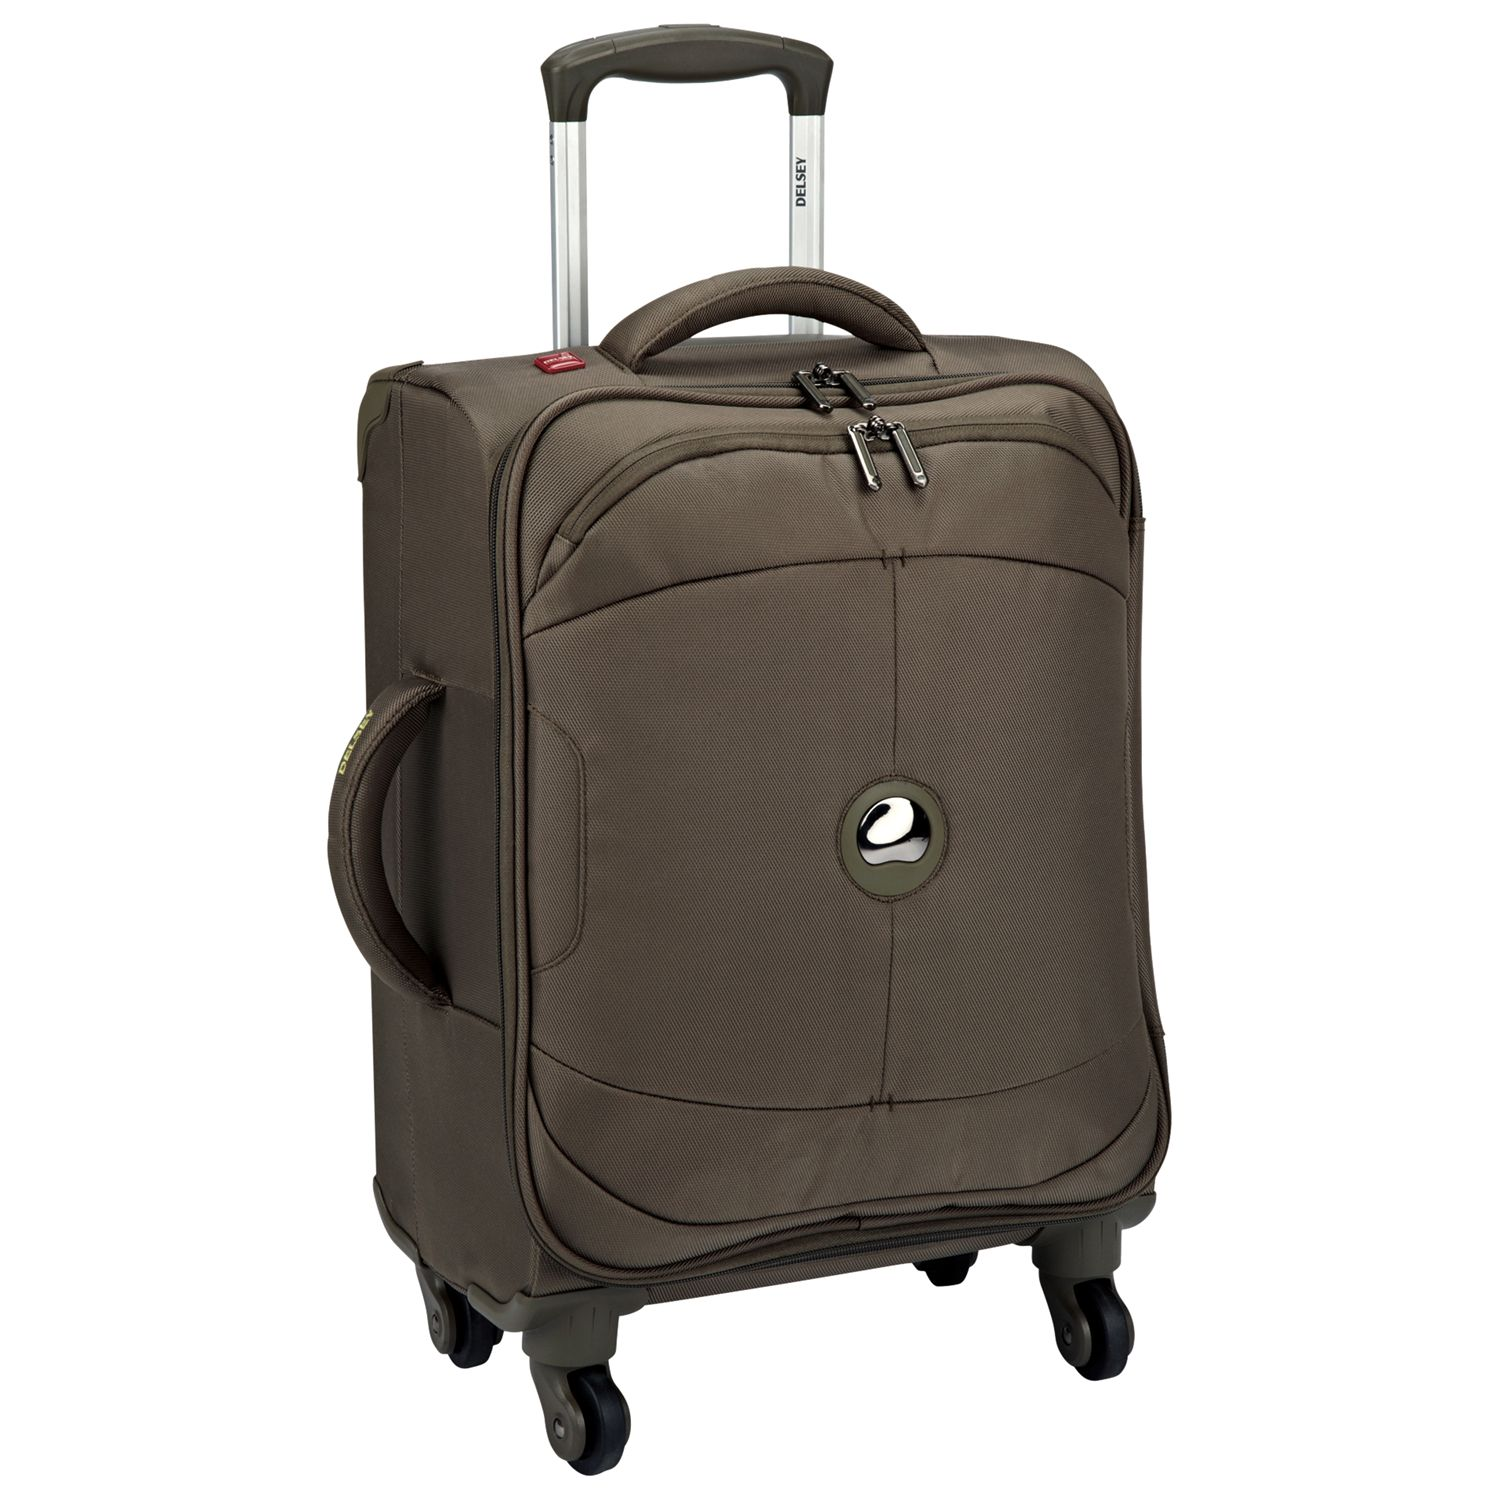 Delsey U-Lite 4-Wheel Hard Suitcase, Iguana